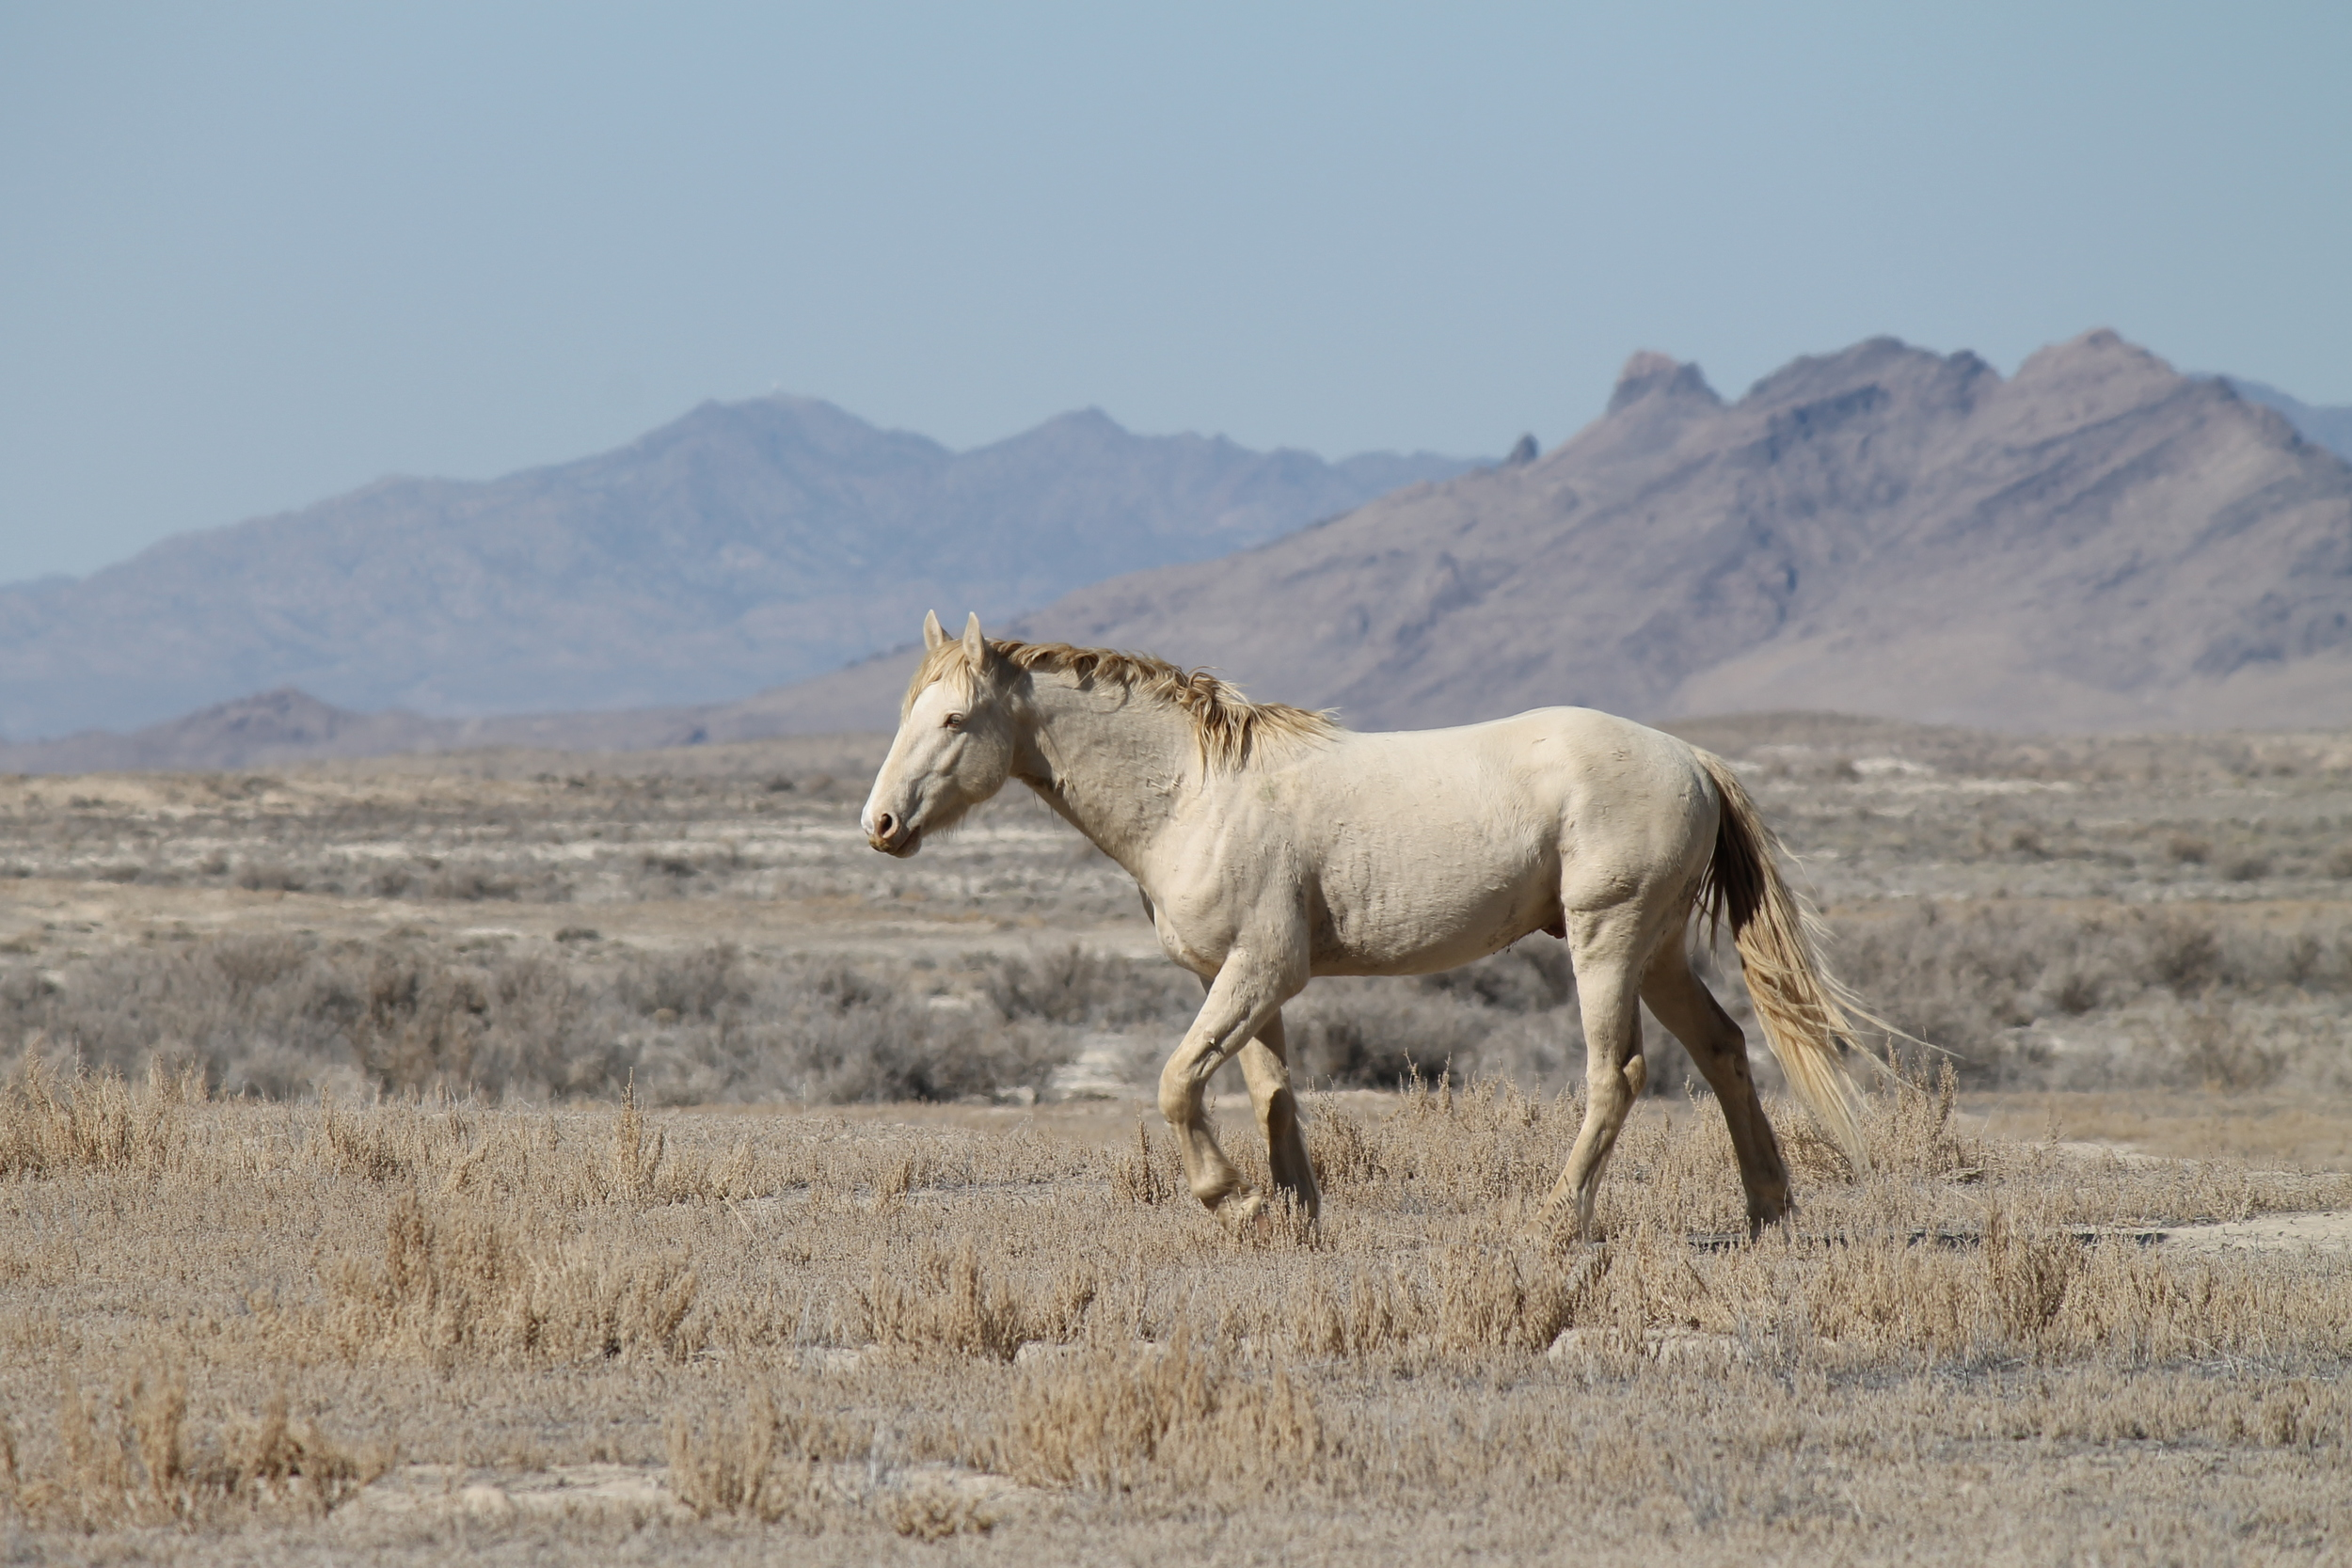 White Stallion with Blonde Mane.jpg